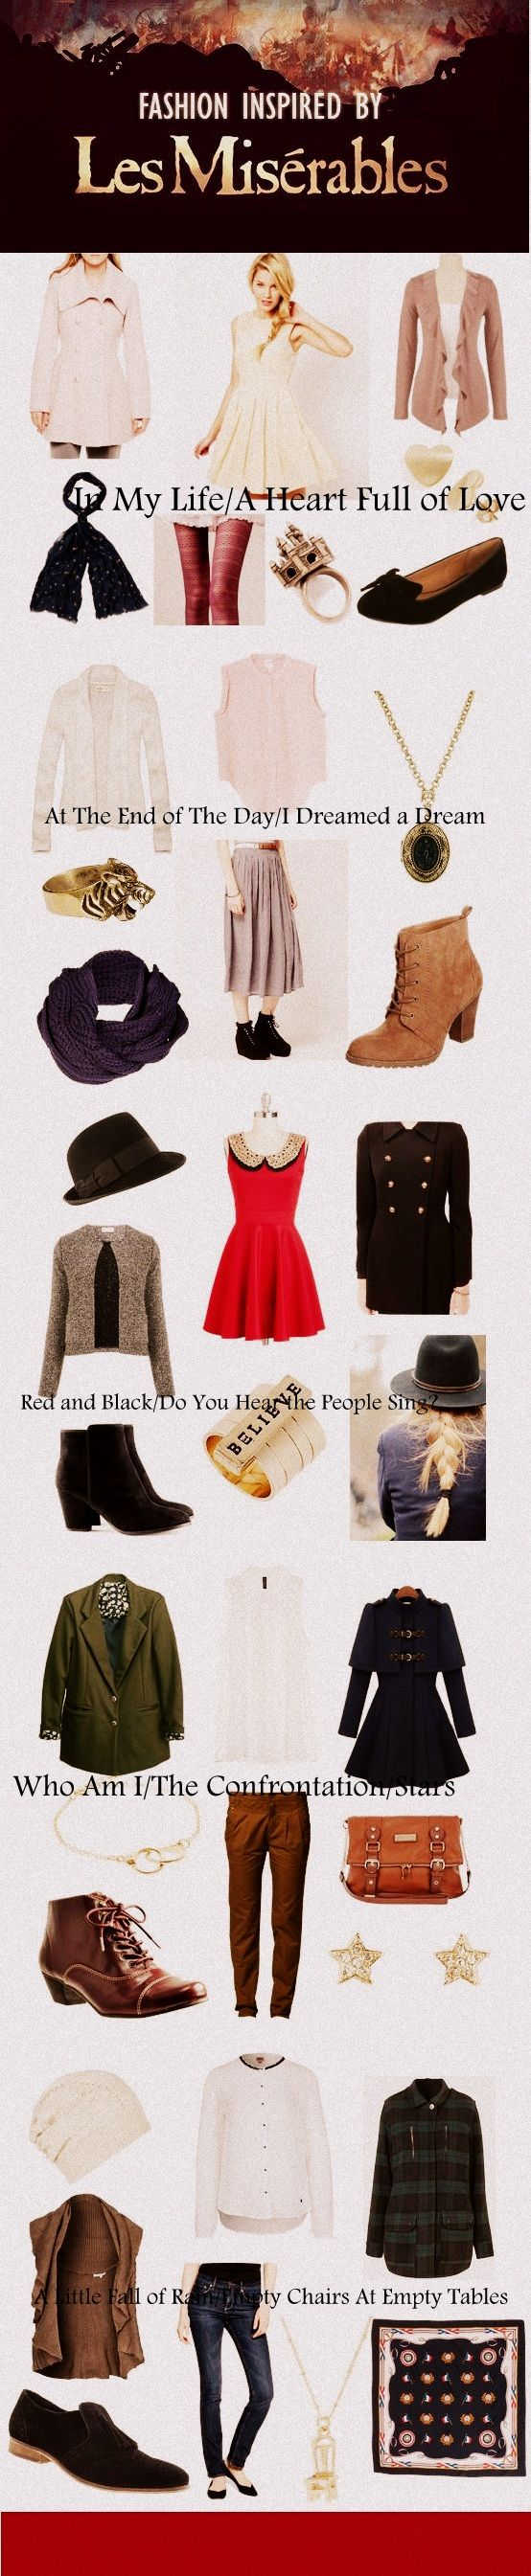 """Les Miserables inspired fashion - love the """"Red and Black/Do You Hear the People Sing?"""" and """"A Little Fall of Rain/Empty Chairs at Empty Tables"""" outfits."""